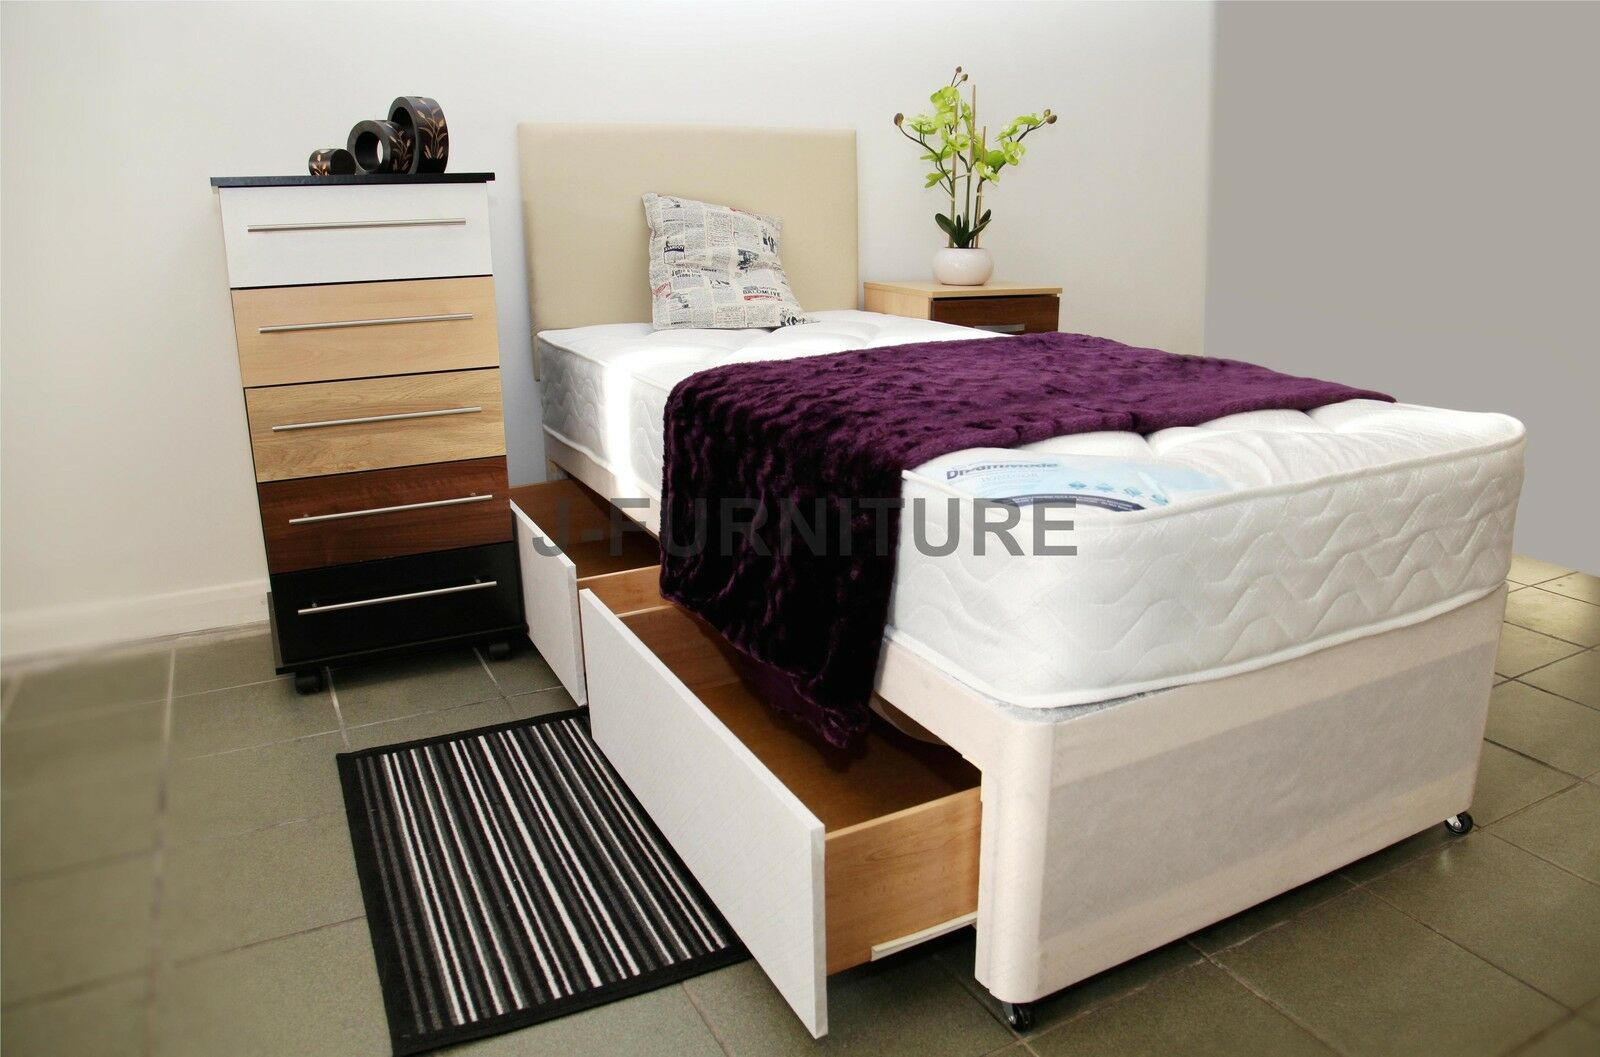 3ft Standard Single Divan Bed With 2 Drawers Deep Quilt Mattress Picclick Uk